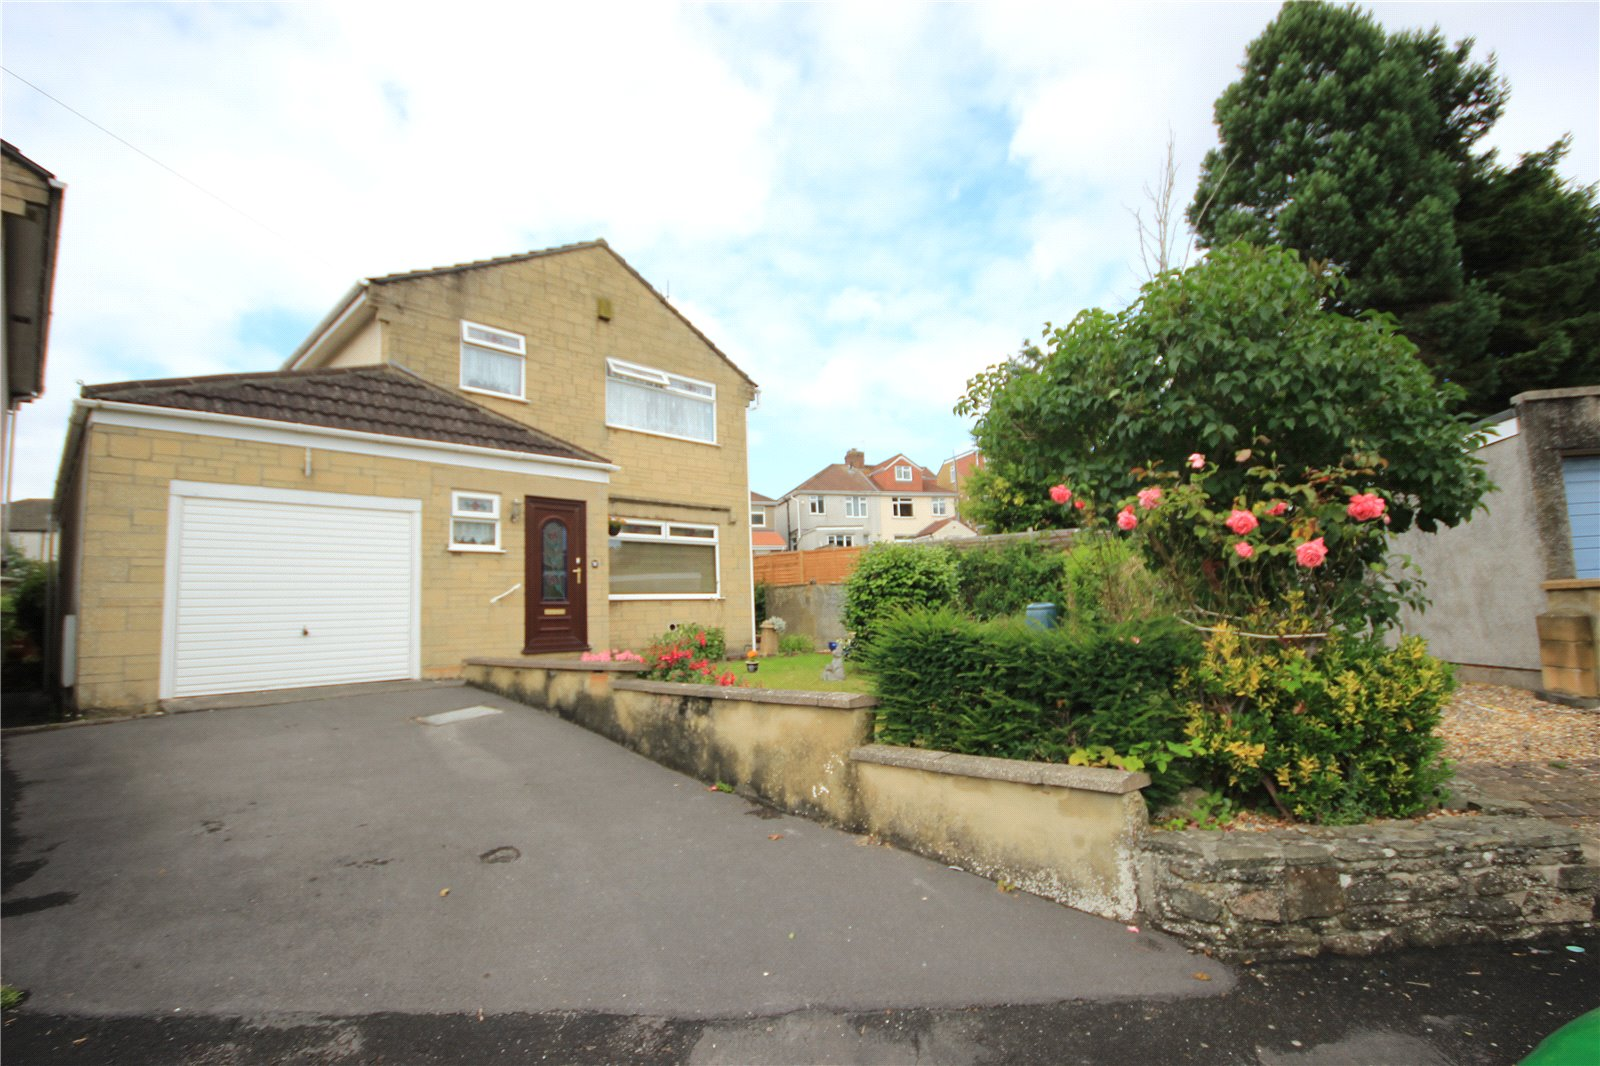 3 Bedrooms Detached House for sale in Kemble Close Hanham Bristol BS15